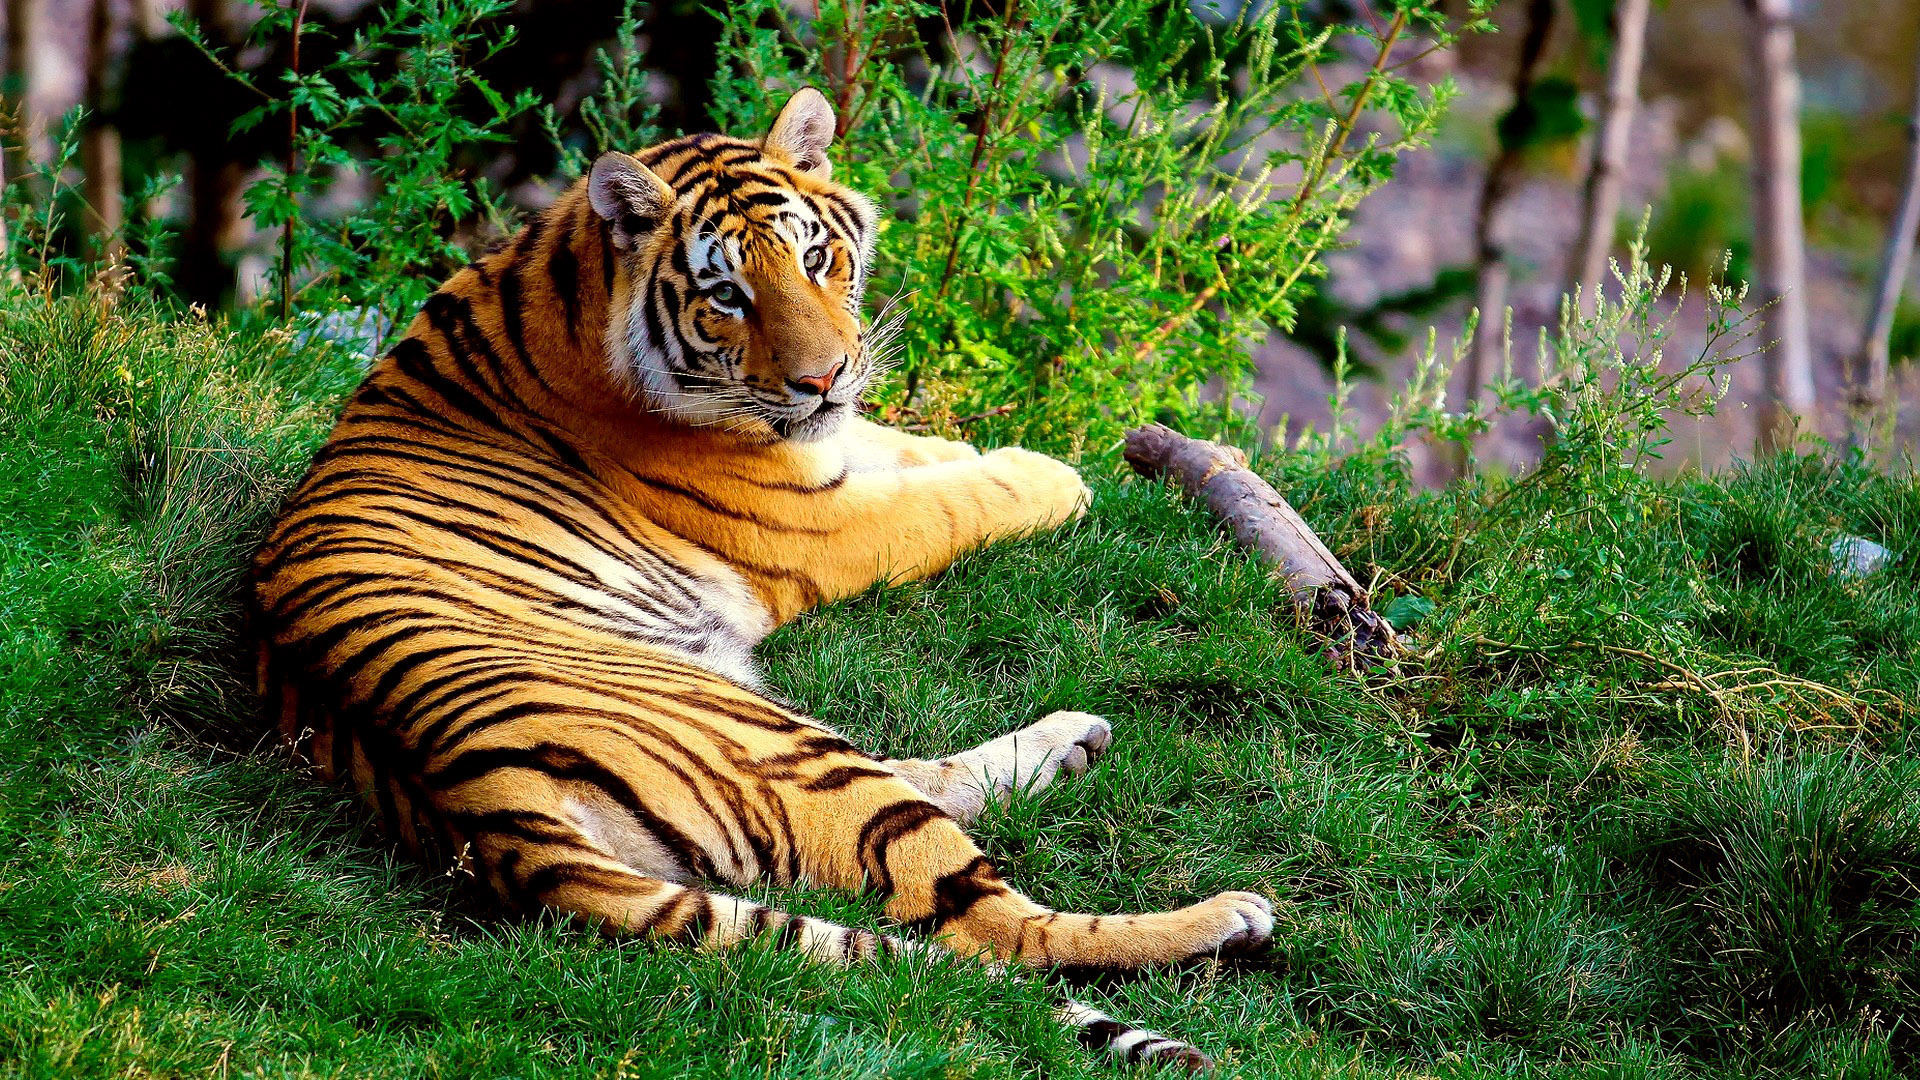 Animals cats tigers stripes color pattern wildlife ...